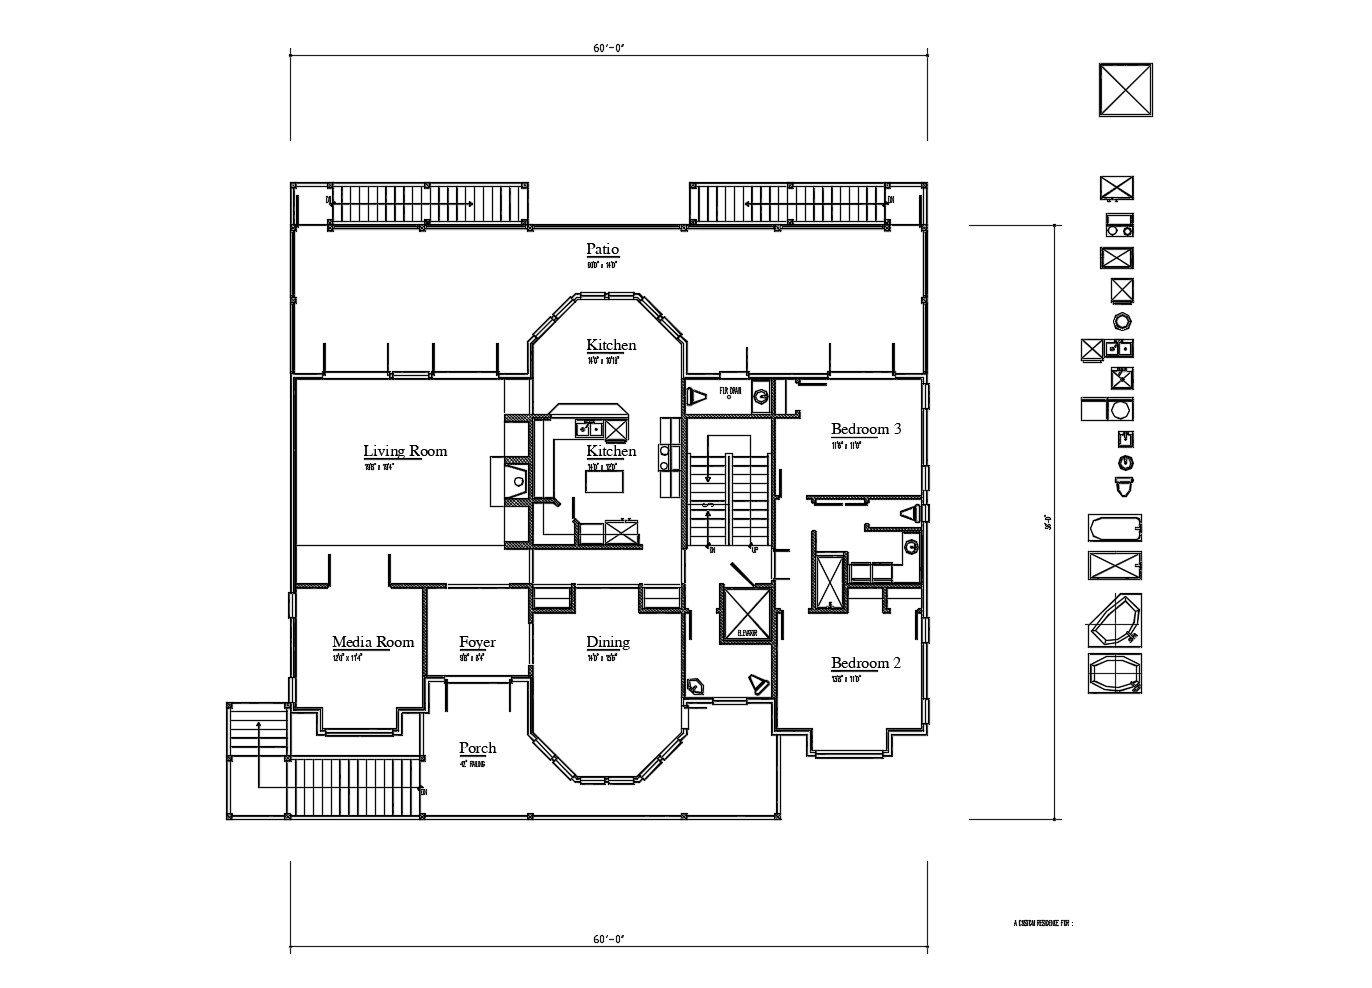 Floor plan of residential house 60'0'' x 56'0'' with detail dimension in AutoCAD